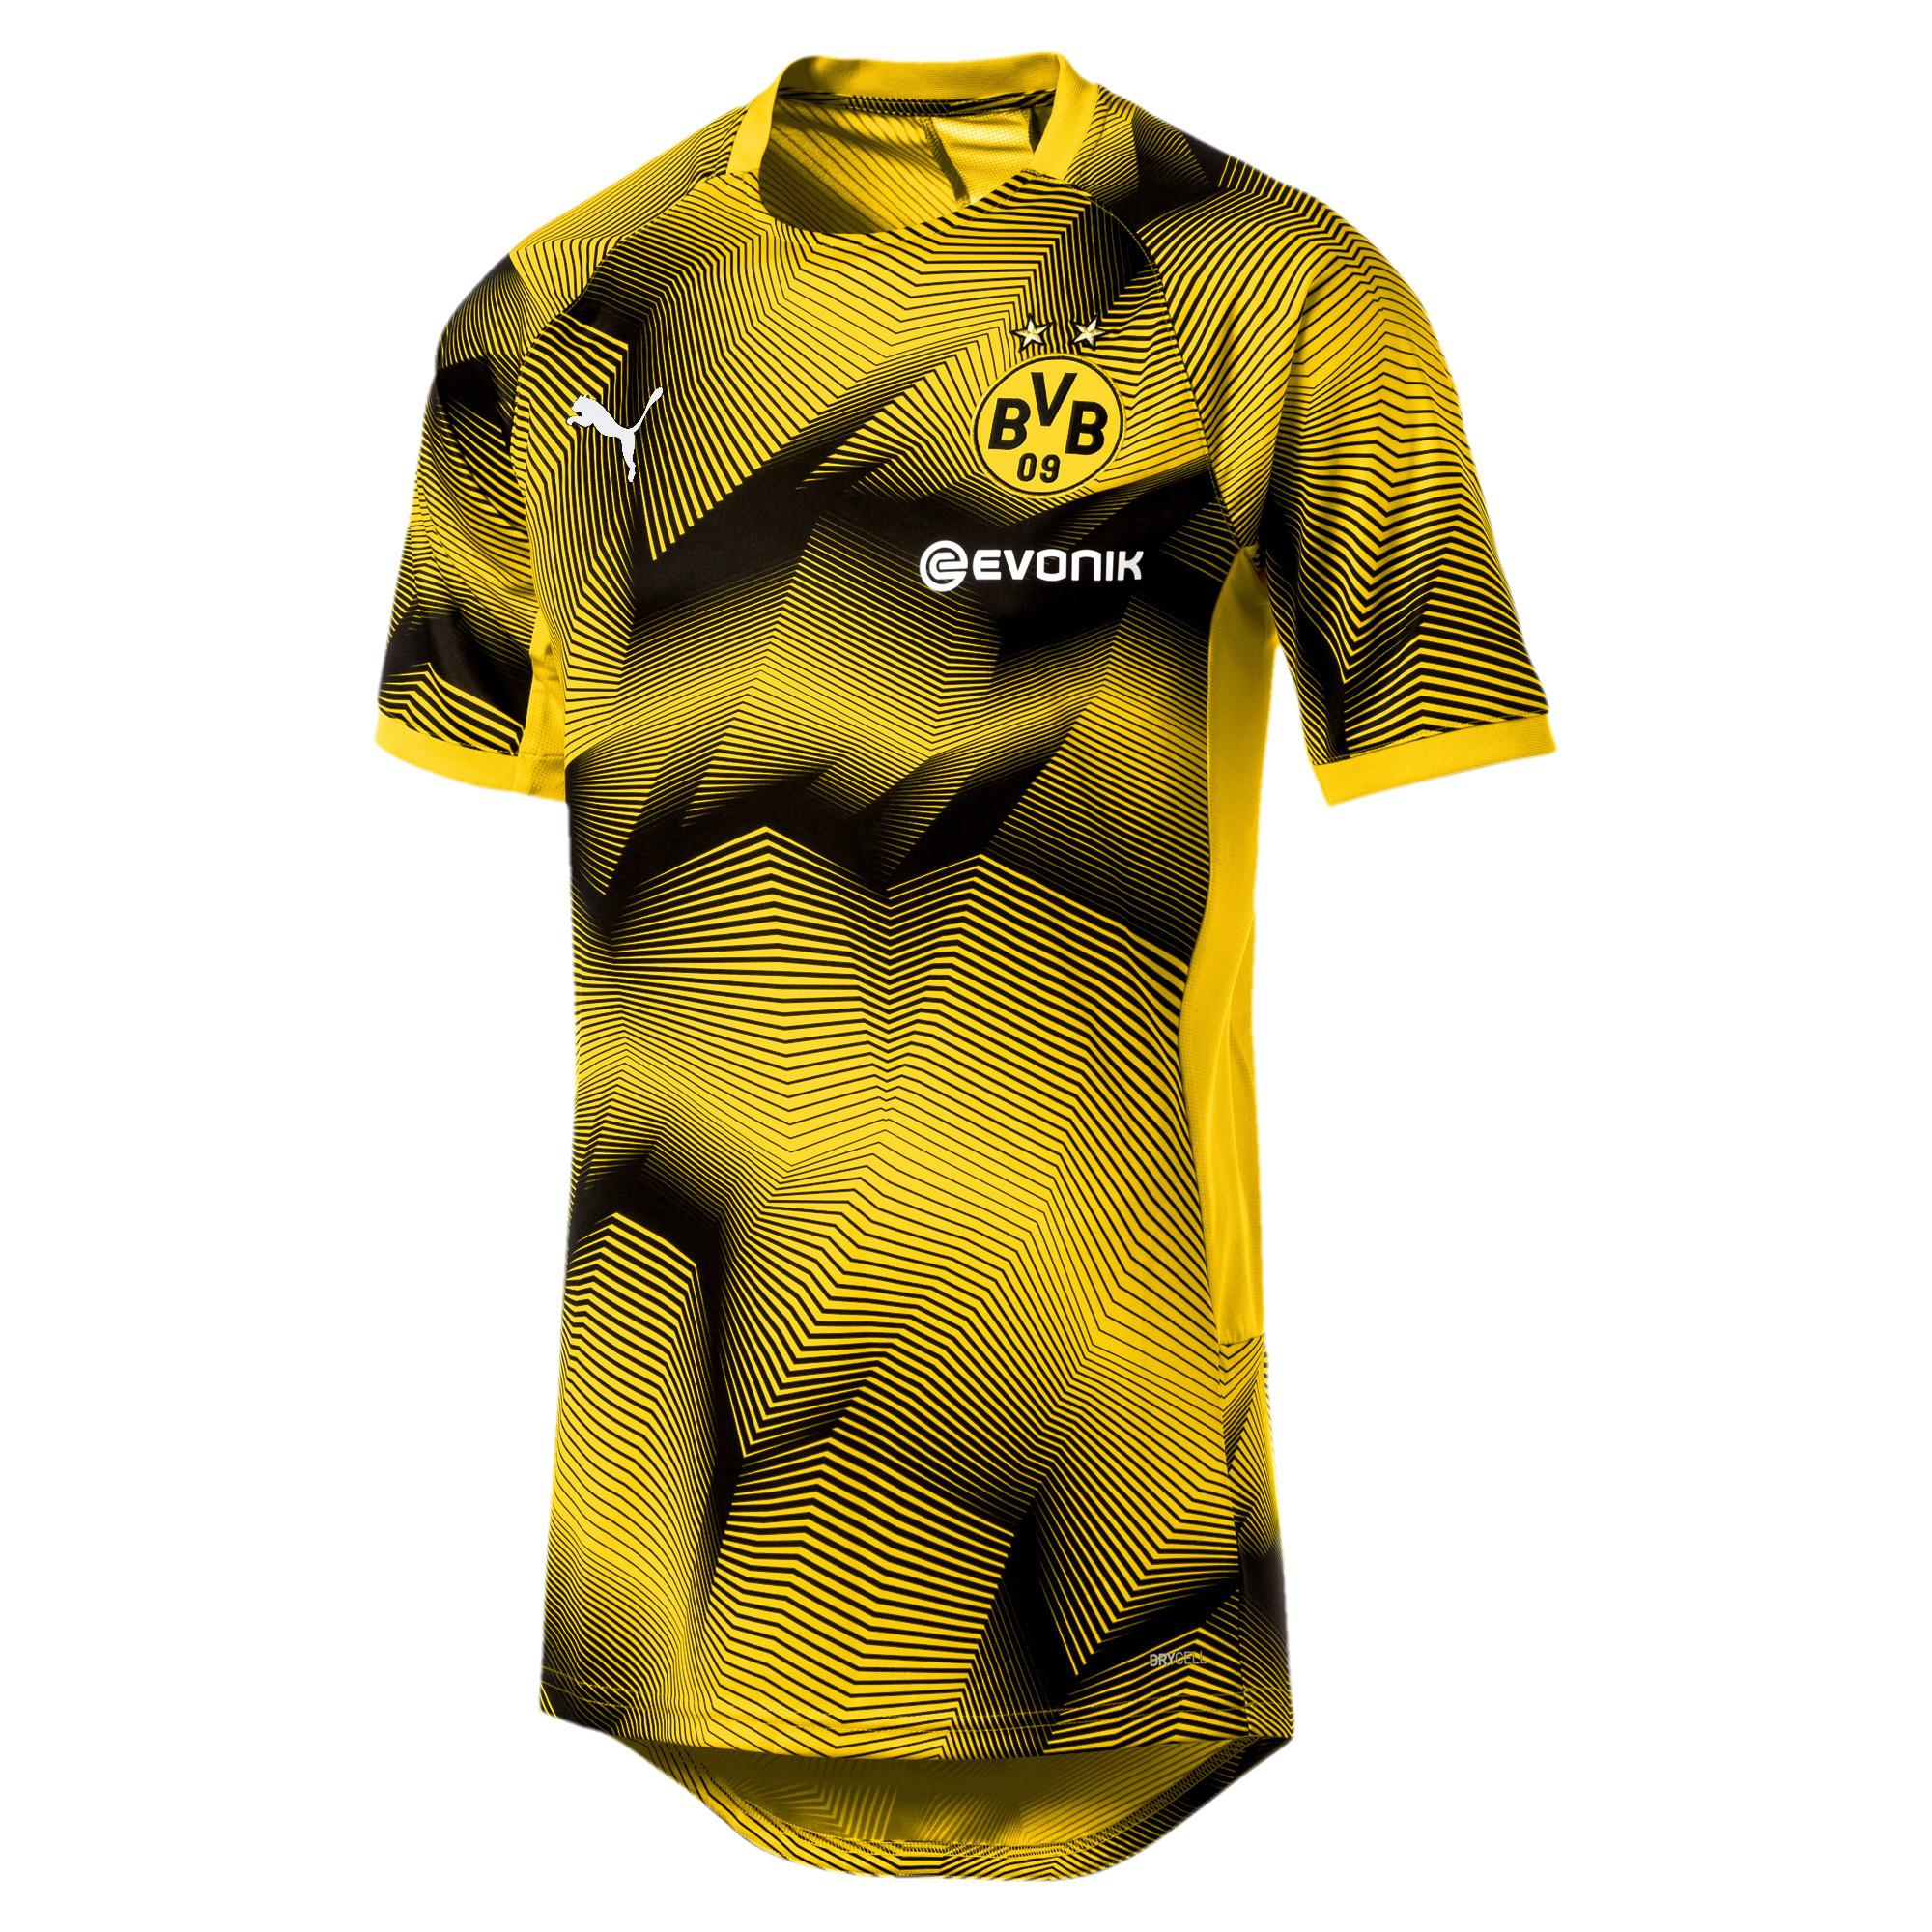 e4a64317 PUMA Bvb Stadium Graphic Jersey in Yellow for Men - Lyst